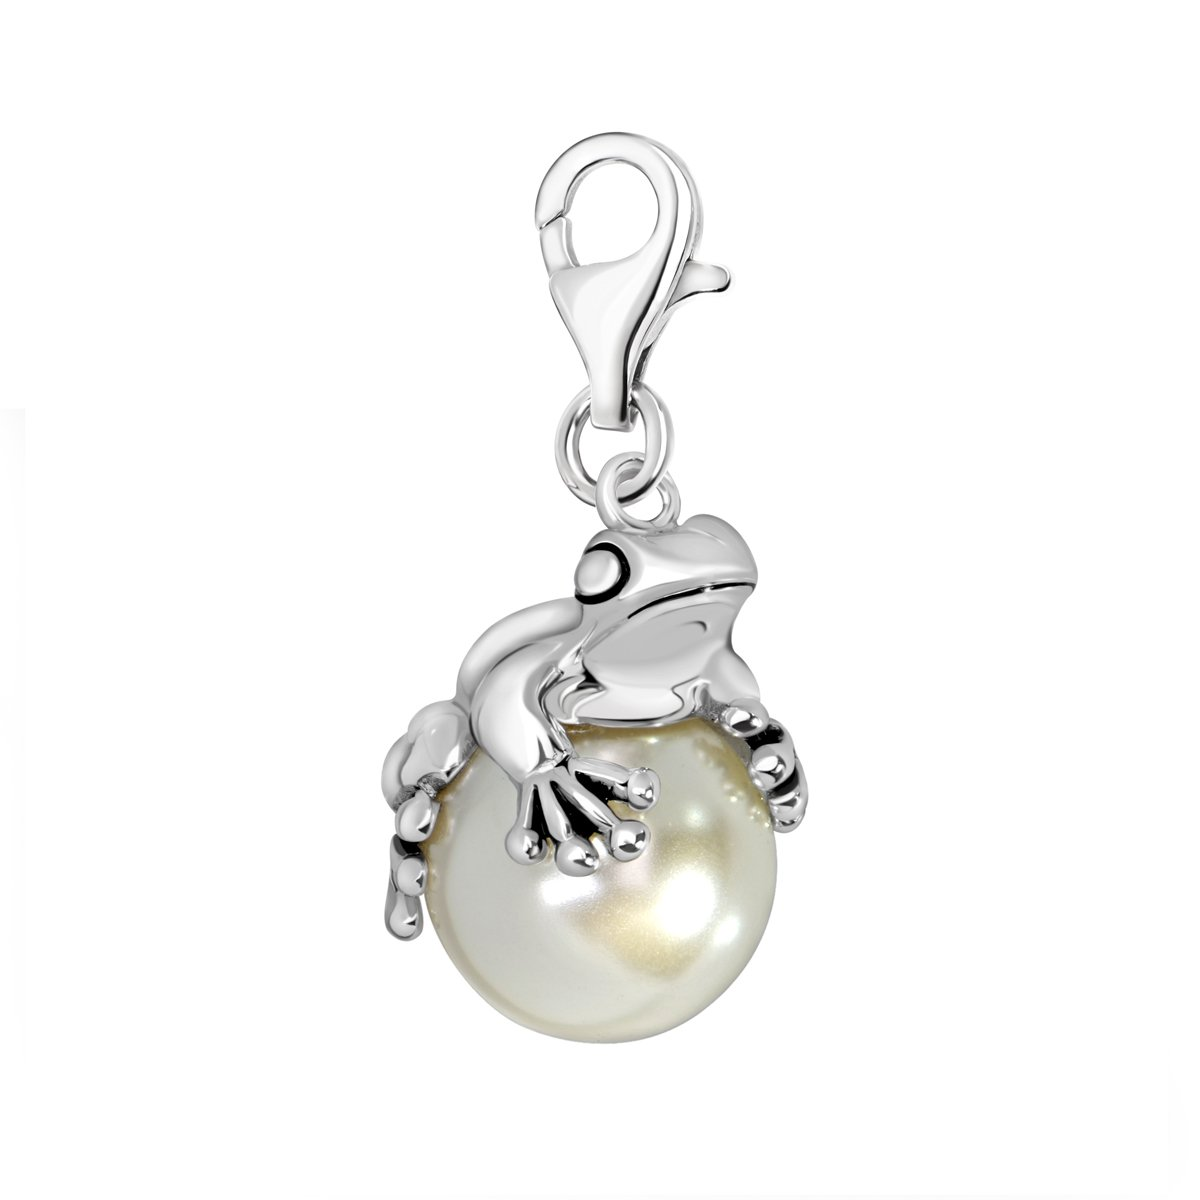 Quiges 925 Sterling Silver 3D Frog Bead Charm Iq4Xjux